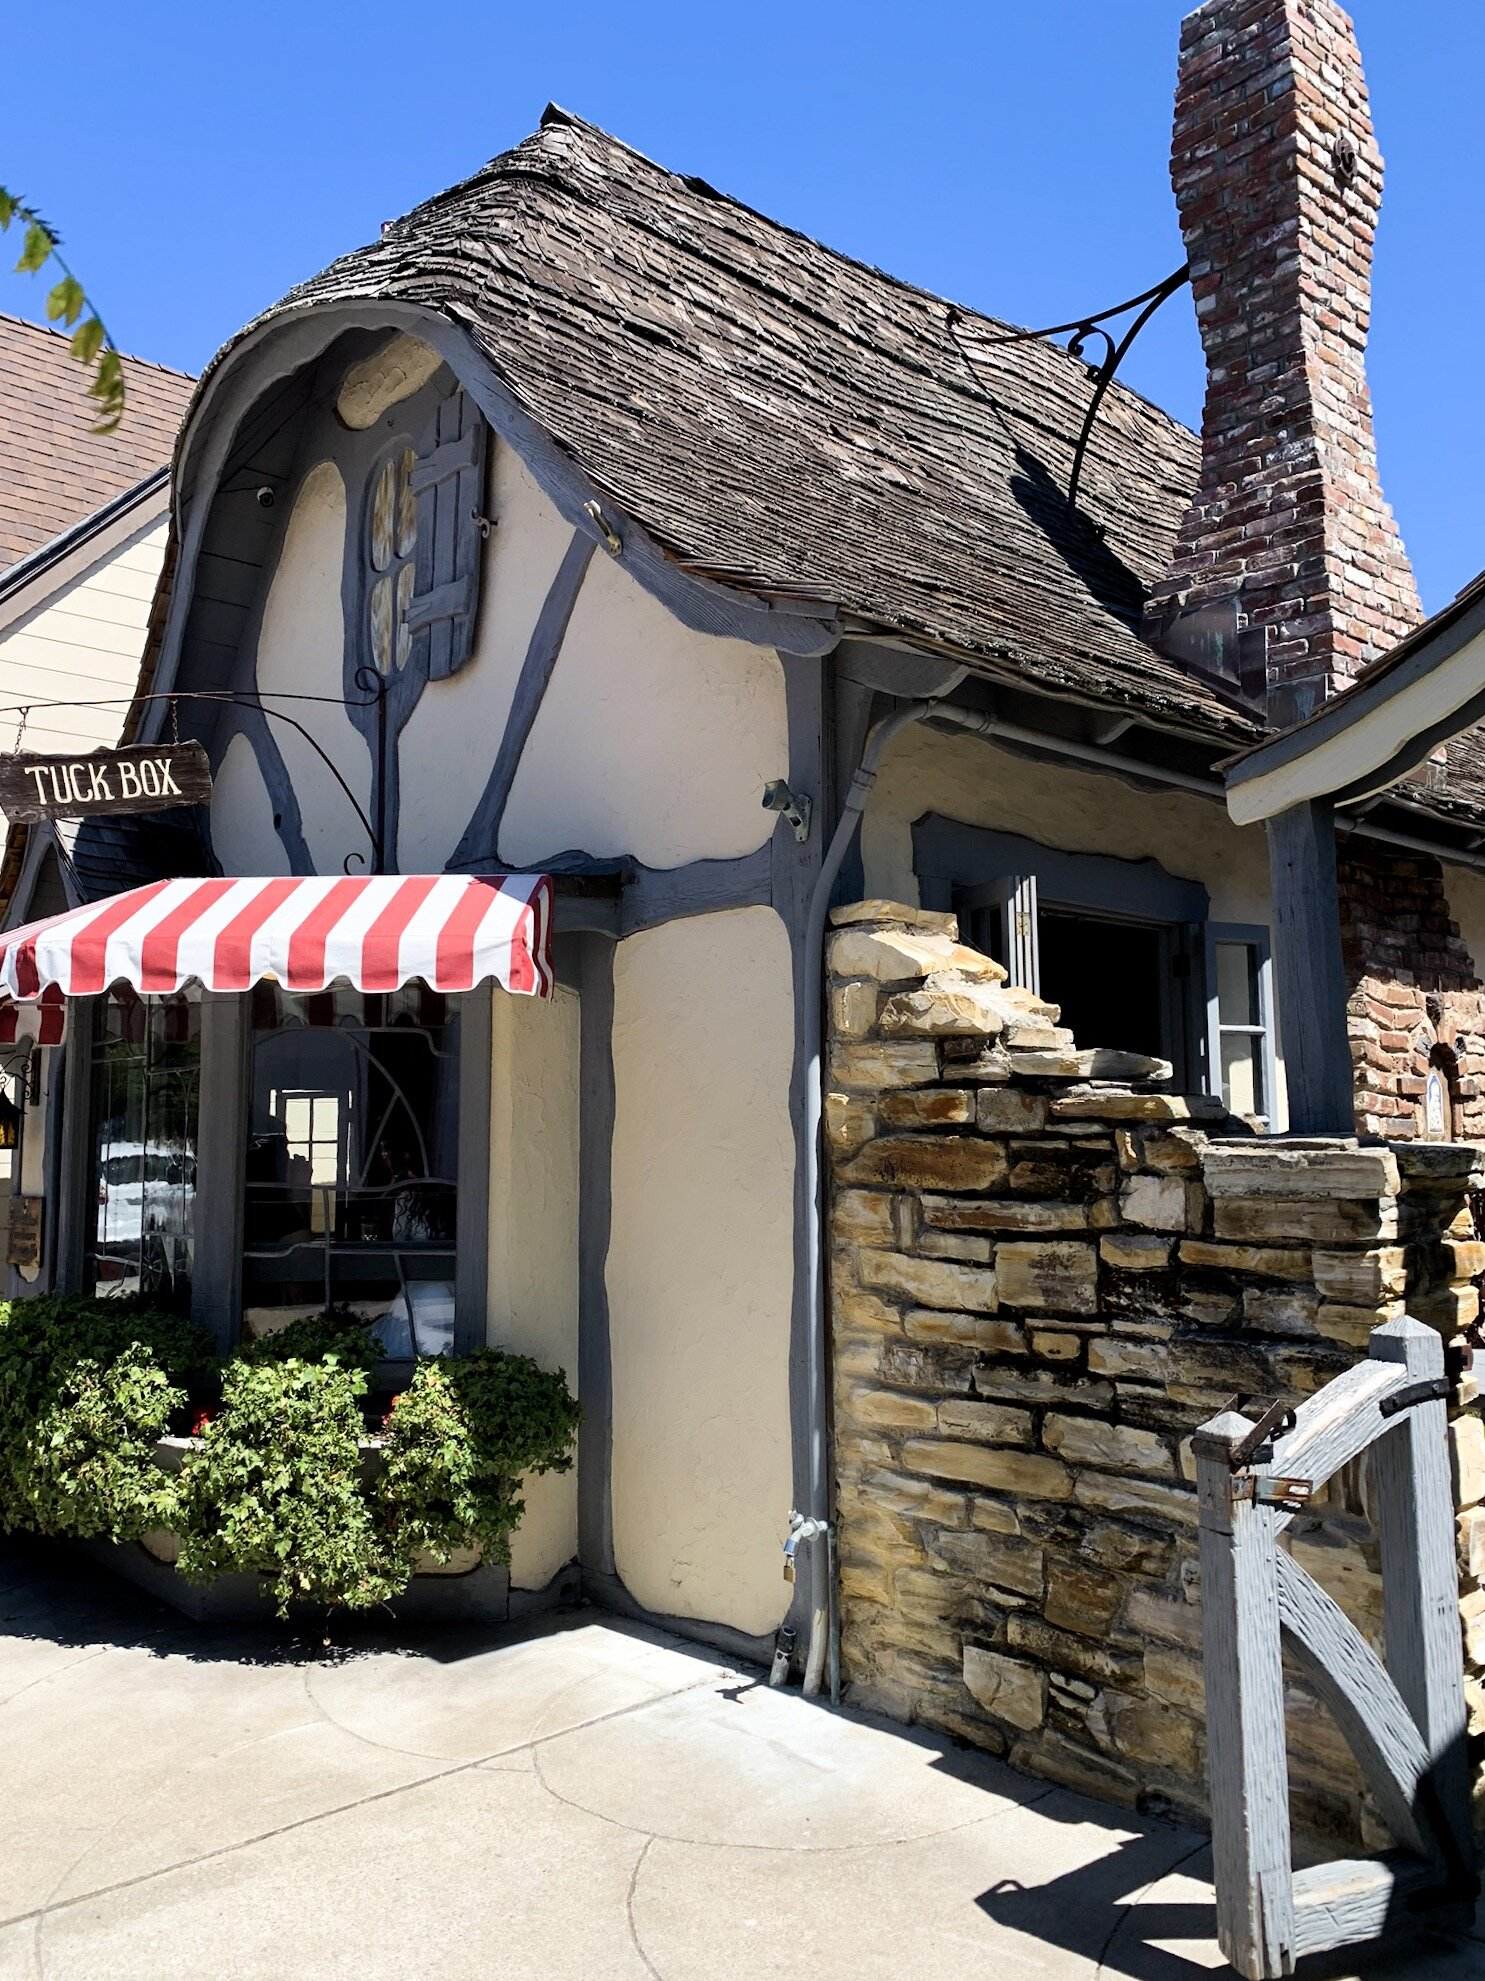 The Tuck Box quaint architecture in Carmel, California